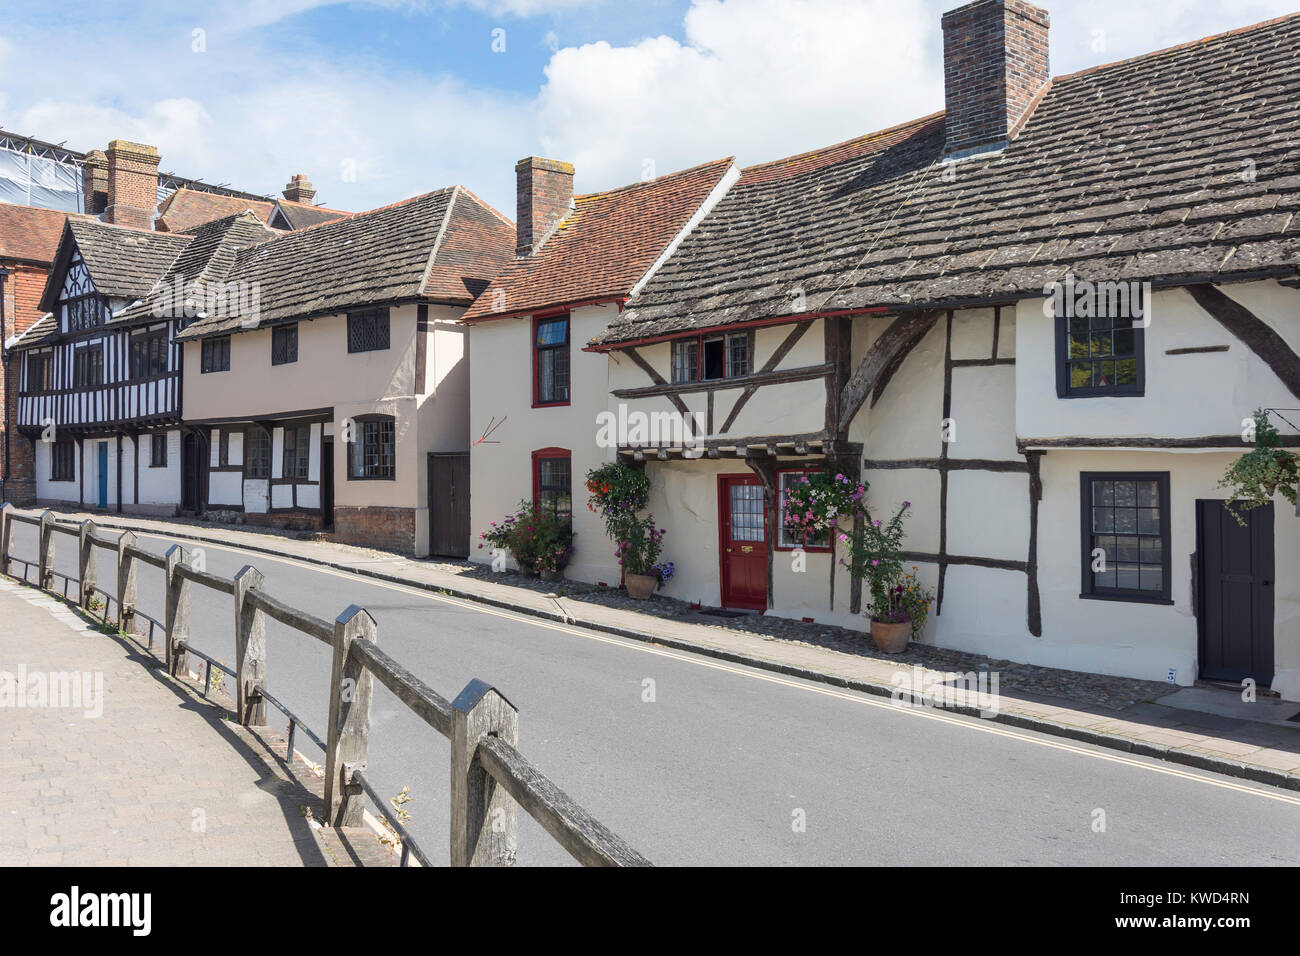 Timber-framed houses on Church Street, Steyning, West Sussex, England, United Kingdom - Stock Image